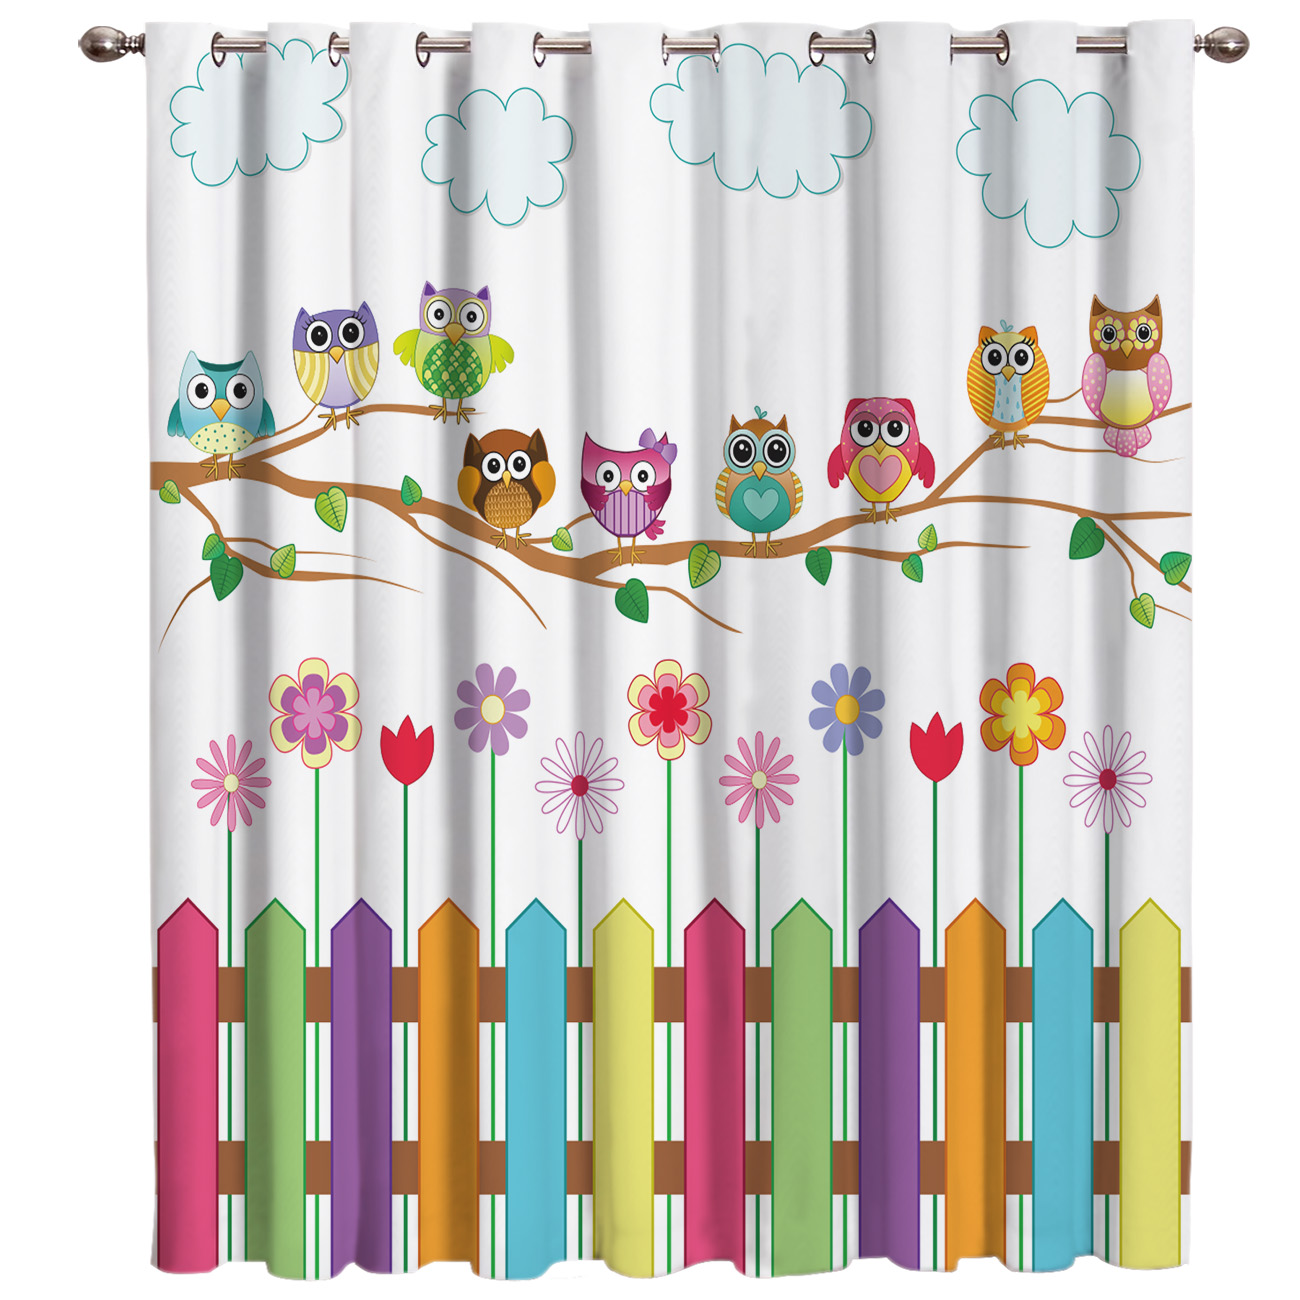 Cartoon Kid Cute Owl Window Curtains Dark Window Blinds Living Room Blackout Bedroom Fabric Kids Curtain Panels With Grommets